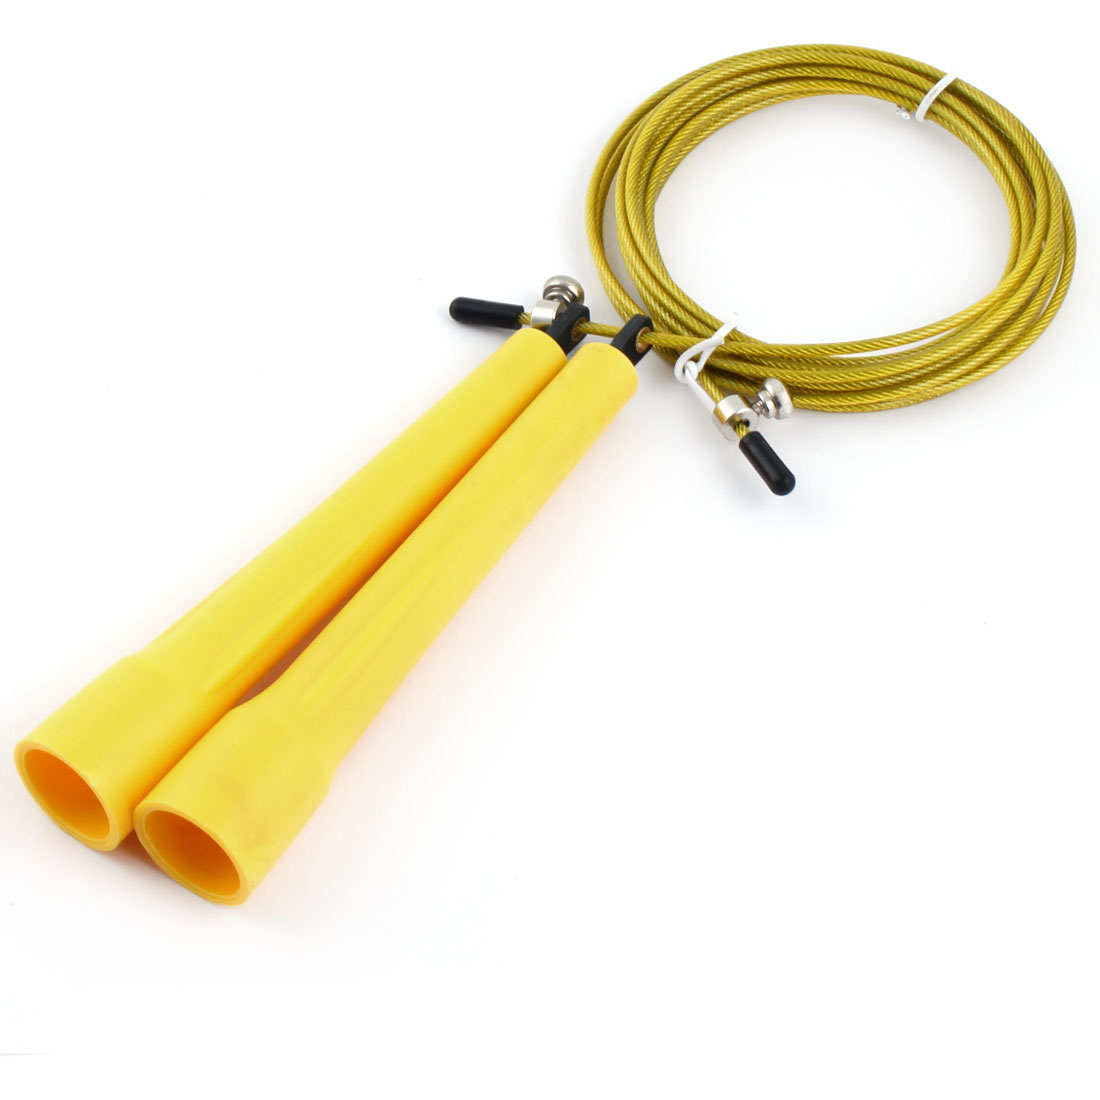 LeTEK Authorized School Sports Fitness Training Skipping Jump Rope Wire Yellow